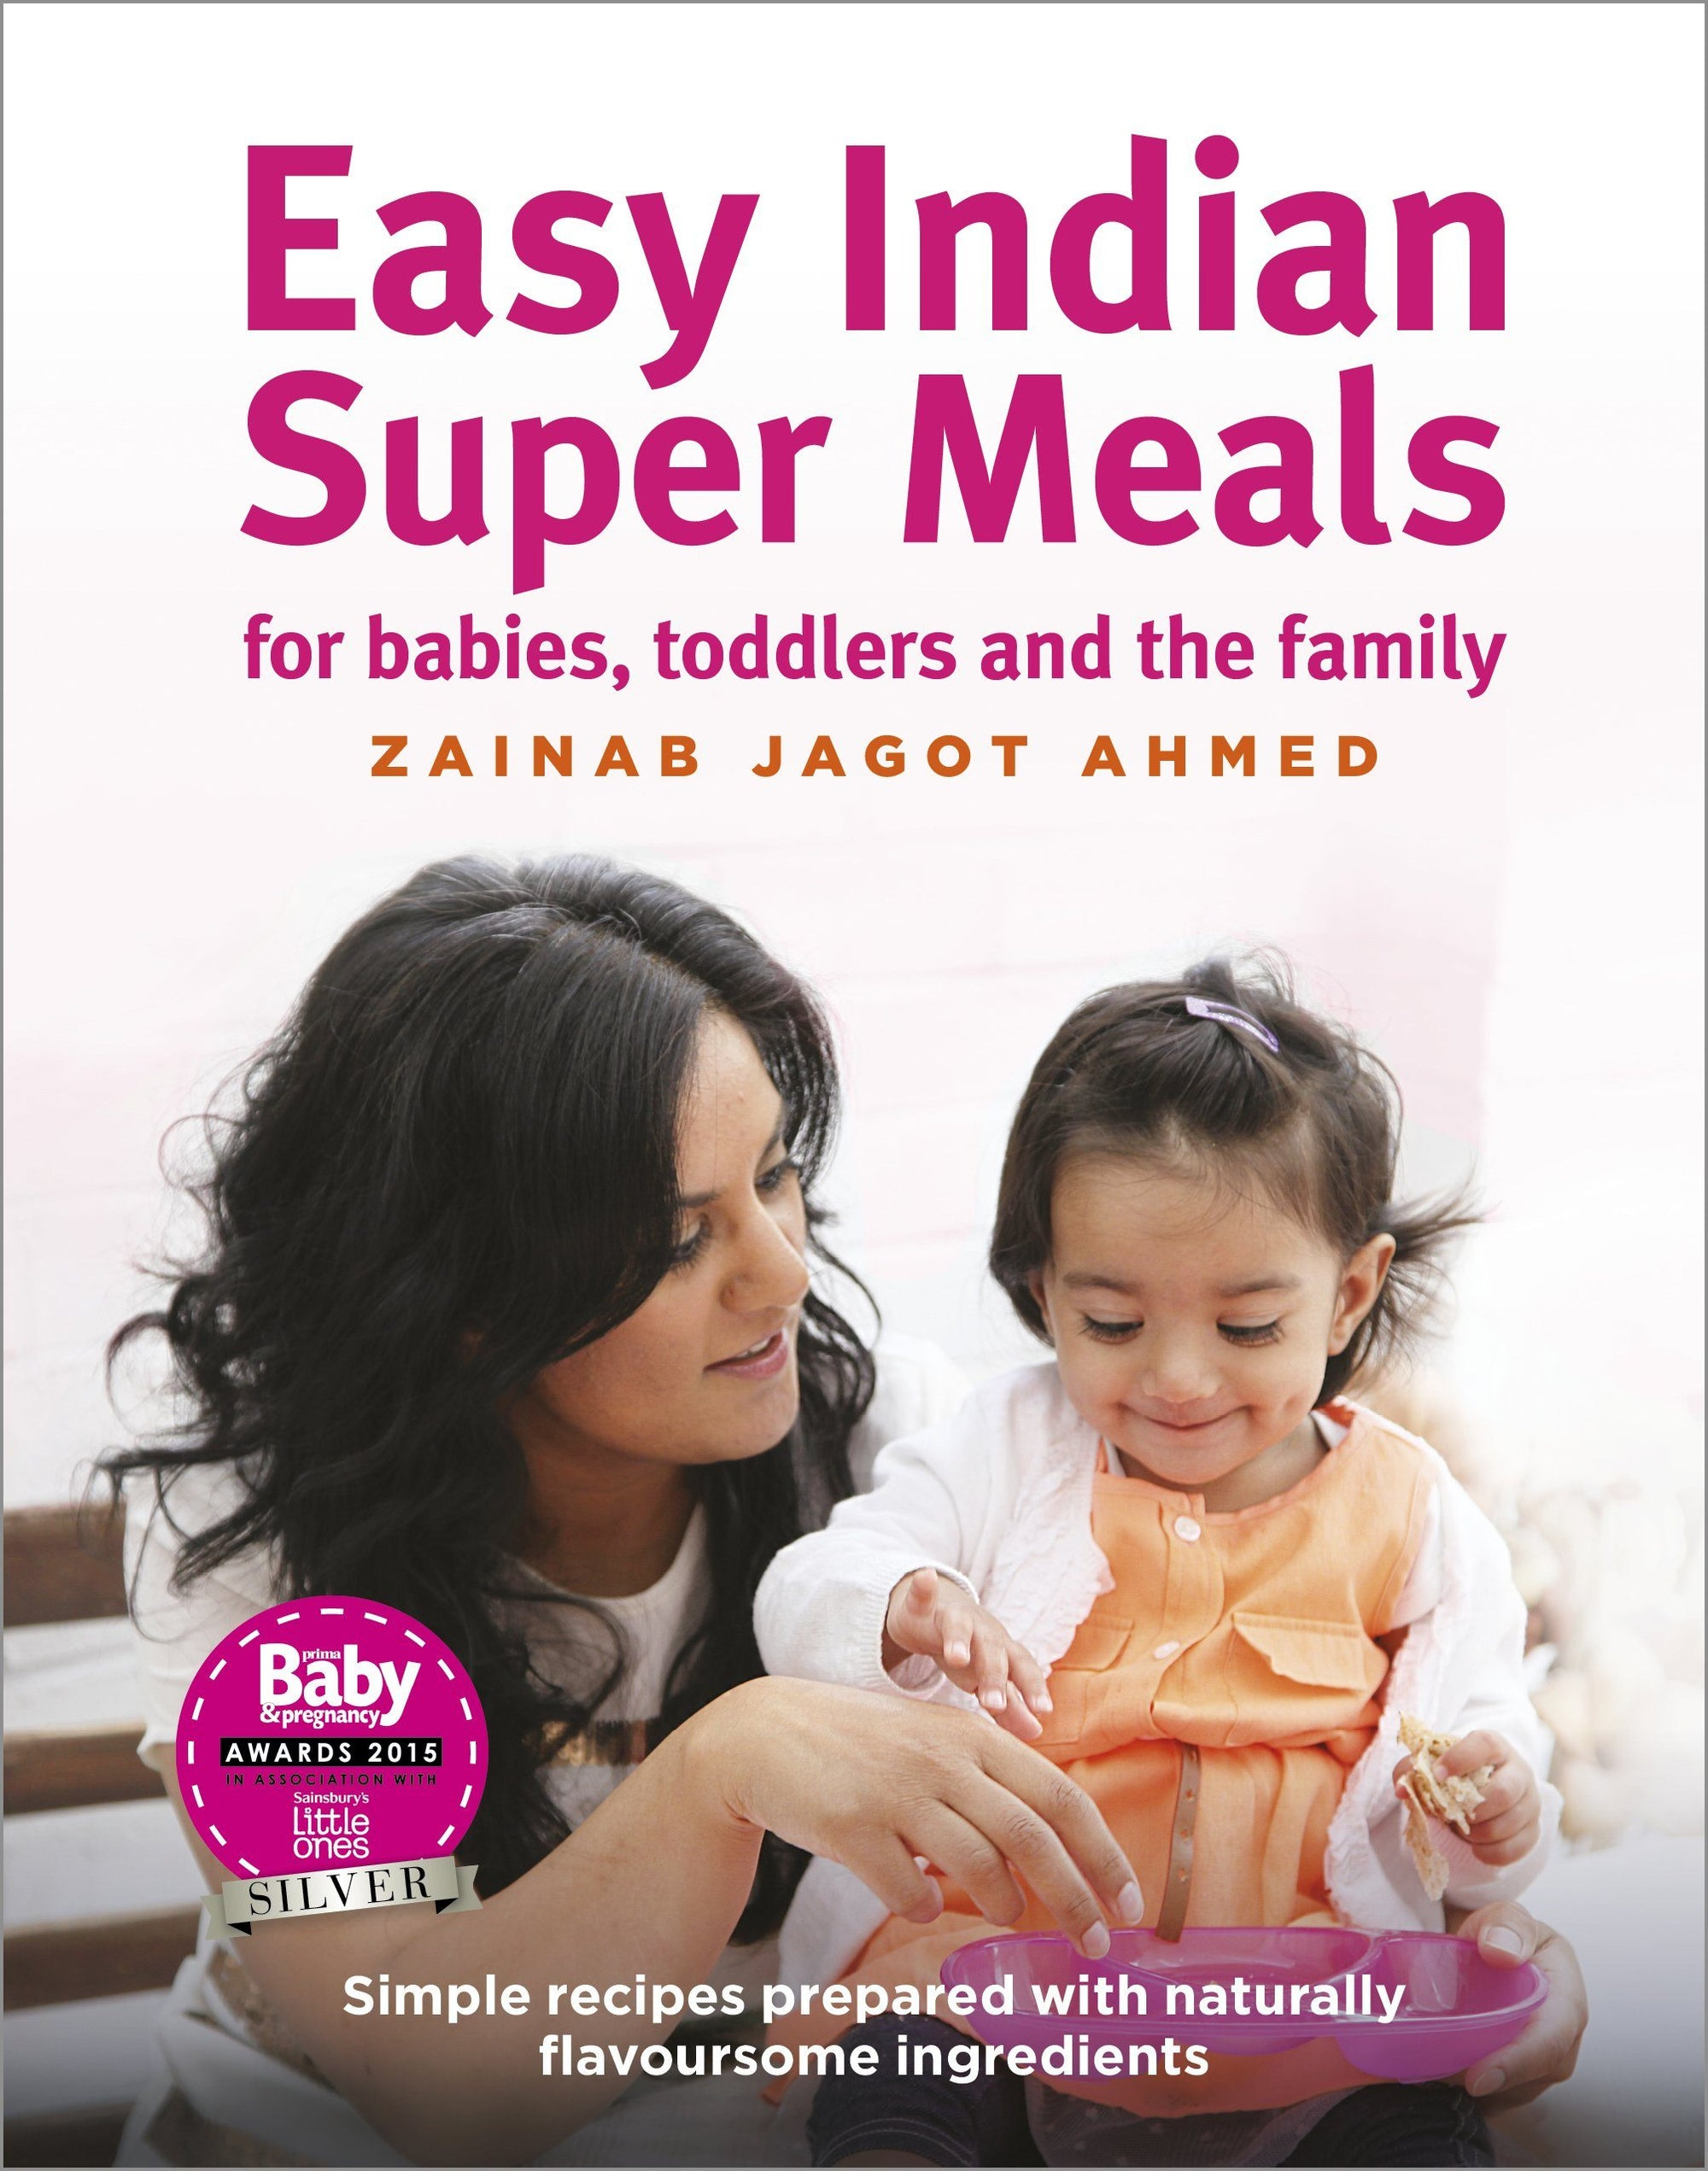 Easy Indian Super Meals, by Zainab Jagot Ahmed & Baby Spice Kitchen Collection - Spice Kitchen - Spices, Spice Blends, Gifts & Cookware